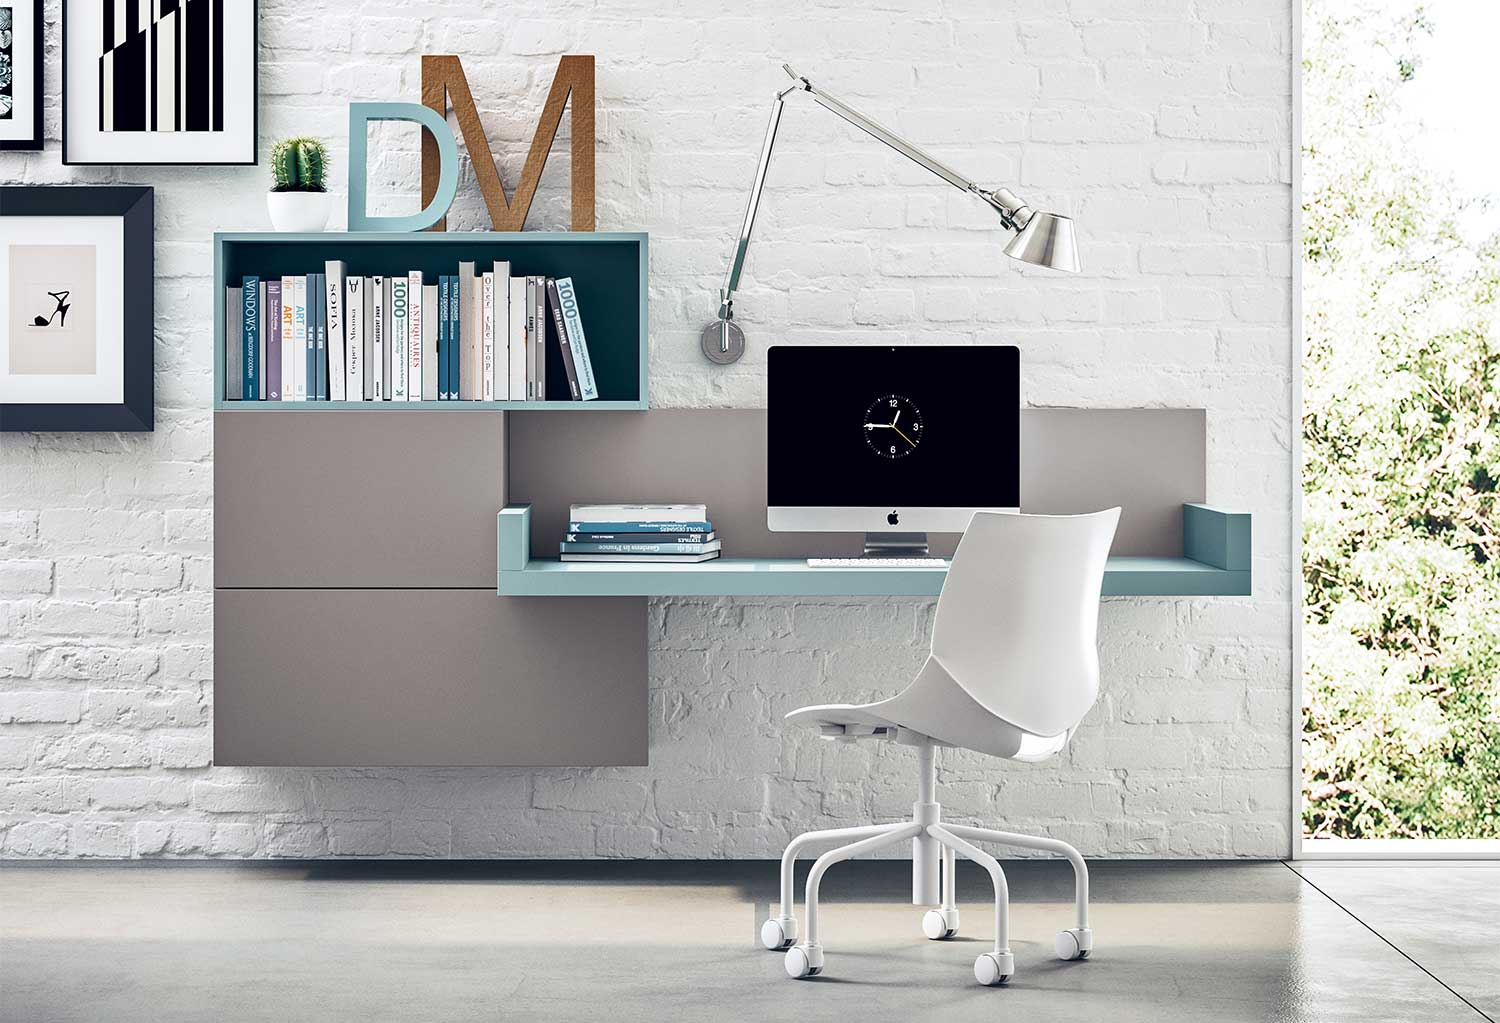 Floating wall desk integrated with wall storage units and shelving